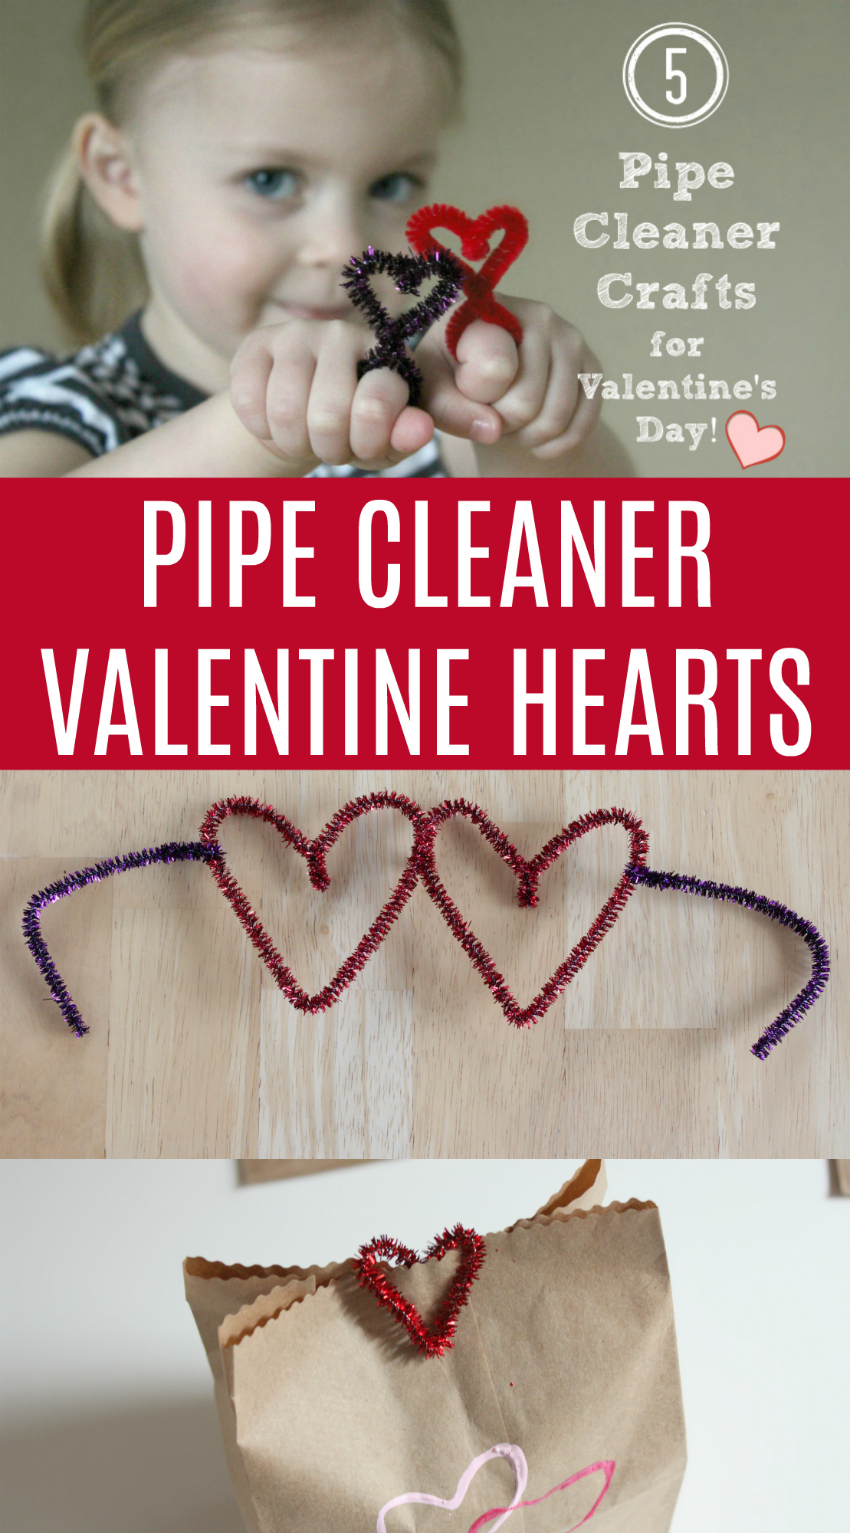 Pipe Cleaner Valentine Hearts to make